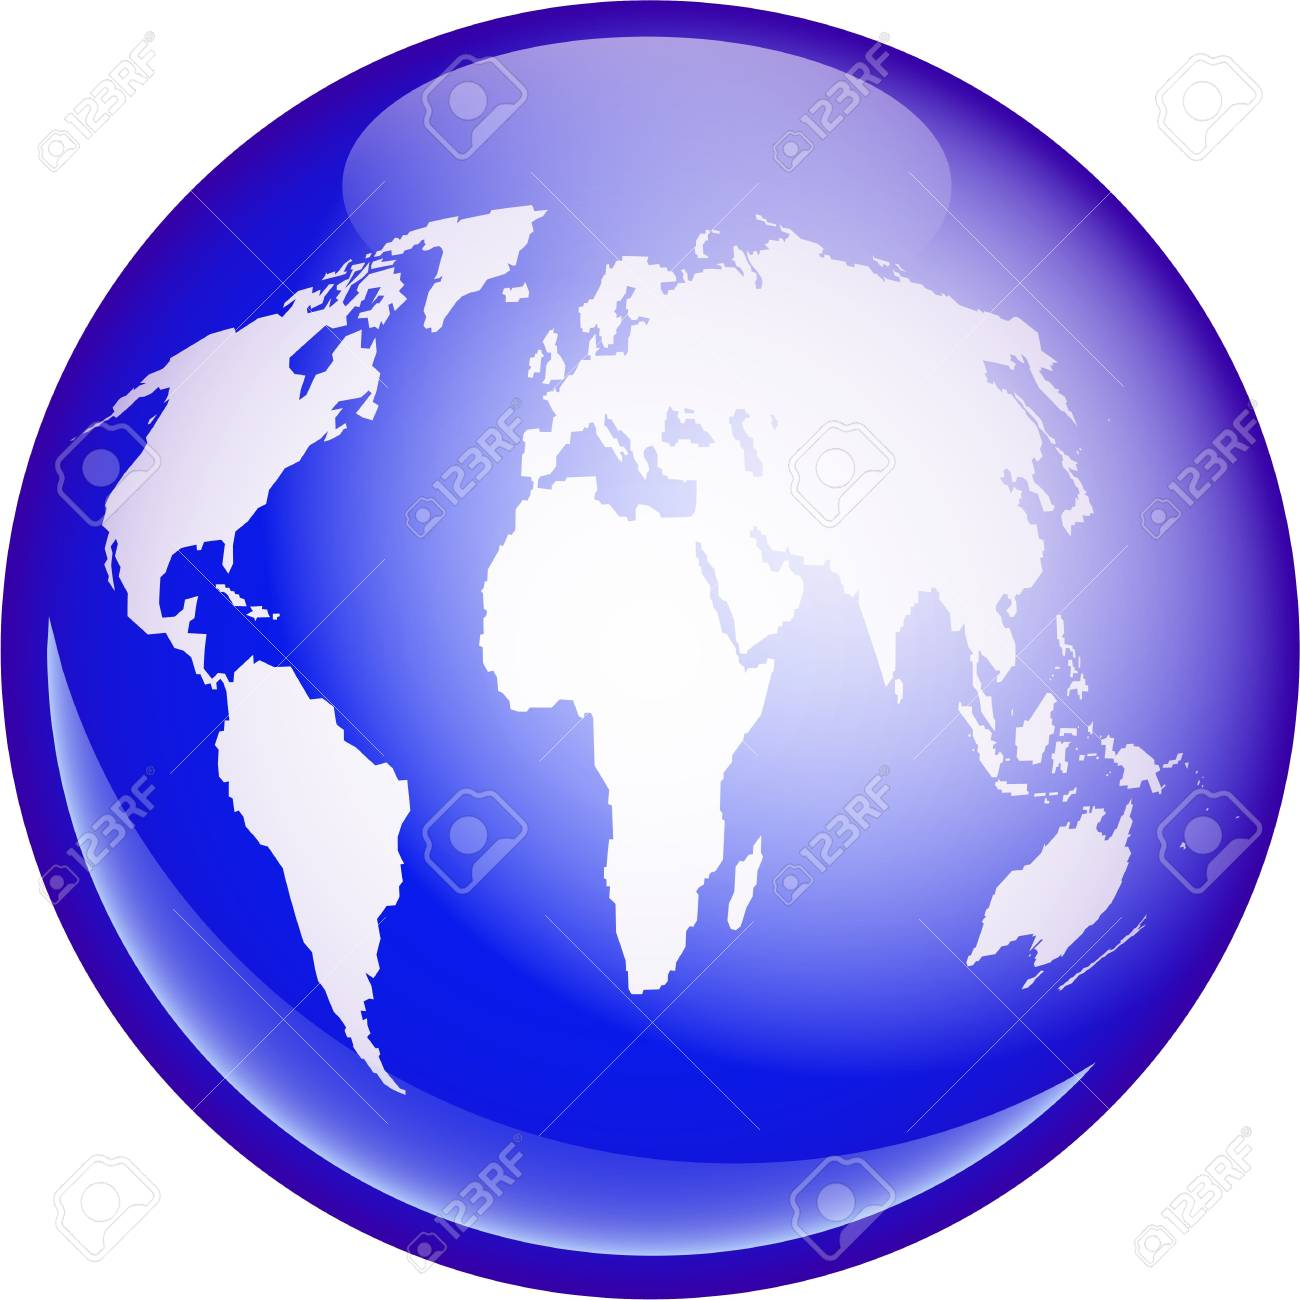 A Blue Globe Featuring A Map Of The Whole World Isolated On White ...